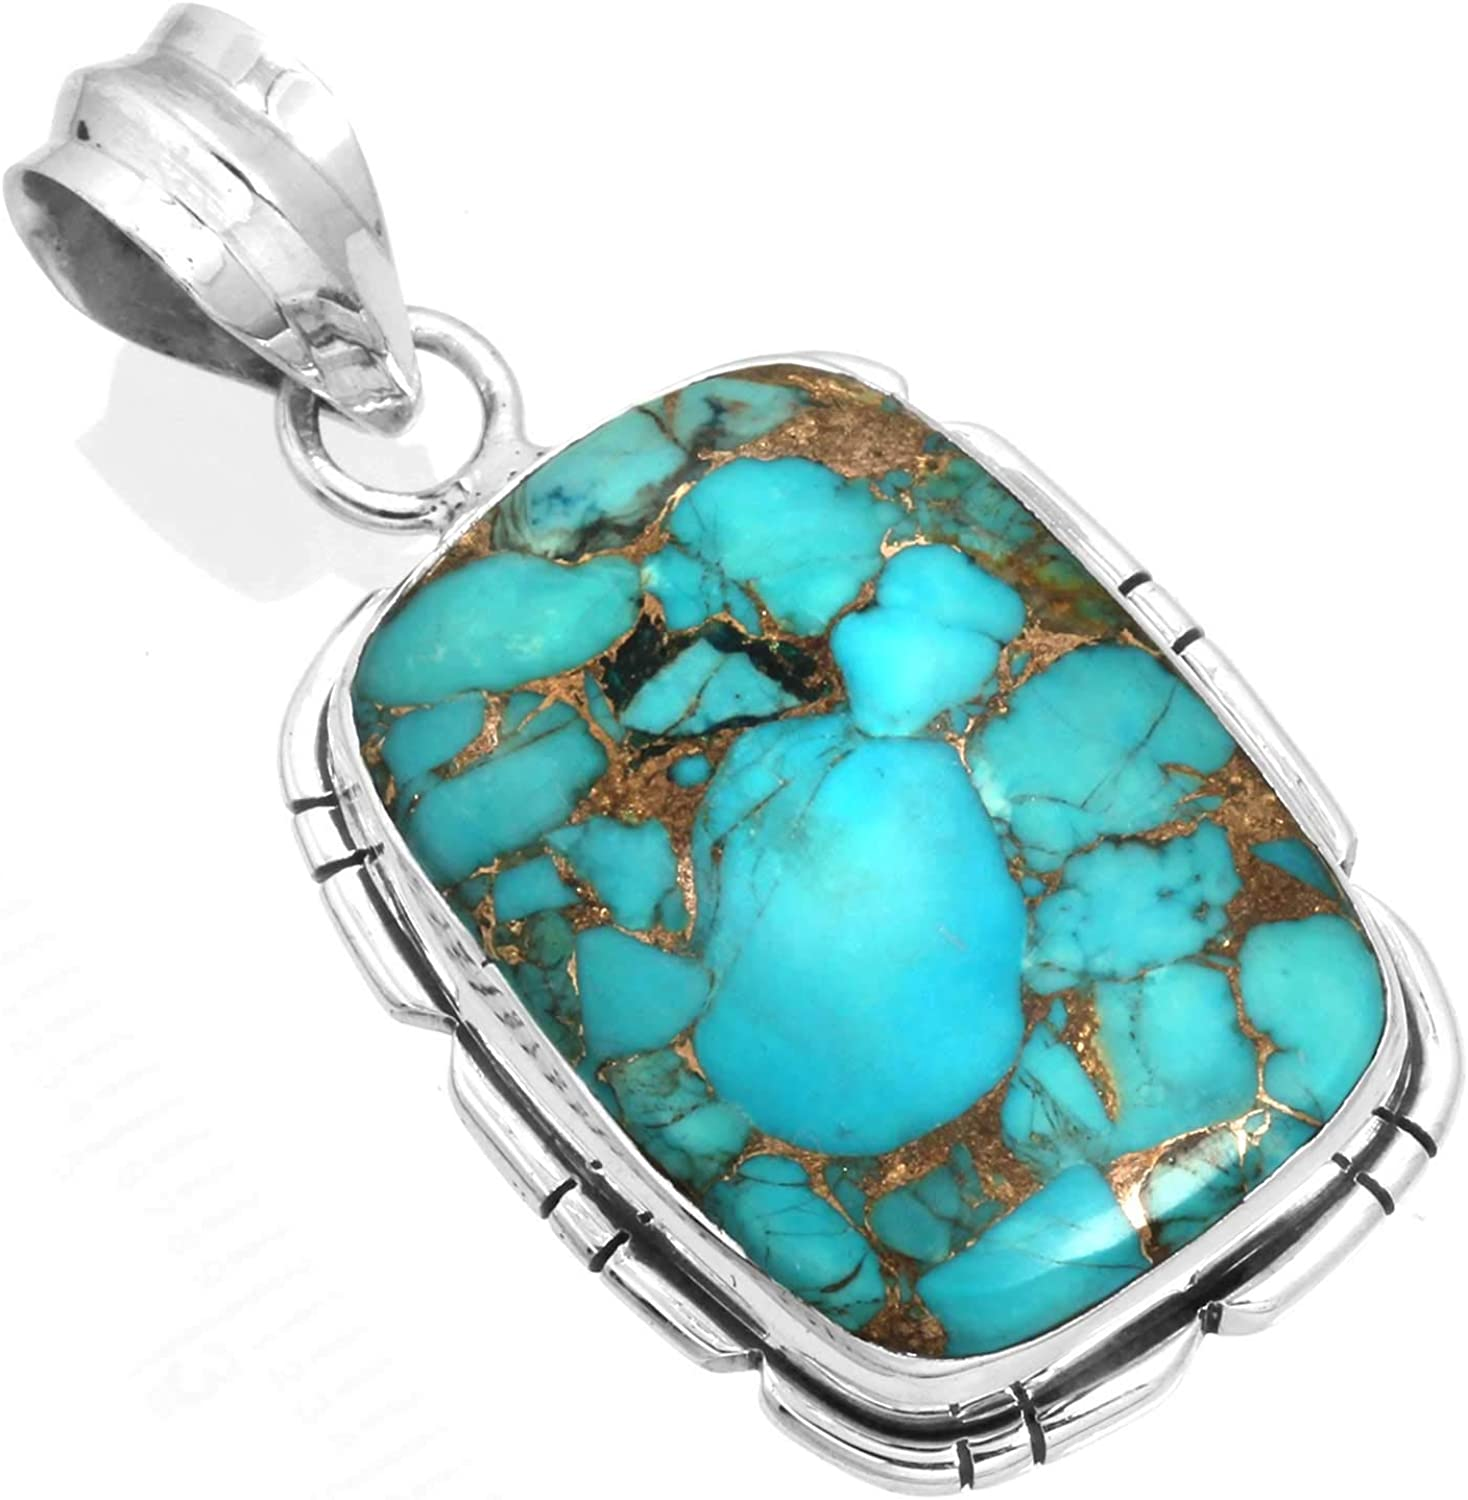 Natural Copper Blue Turquoise Gemstone Stylish Jewelry Solid 925 Sterling Silver Pendant